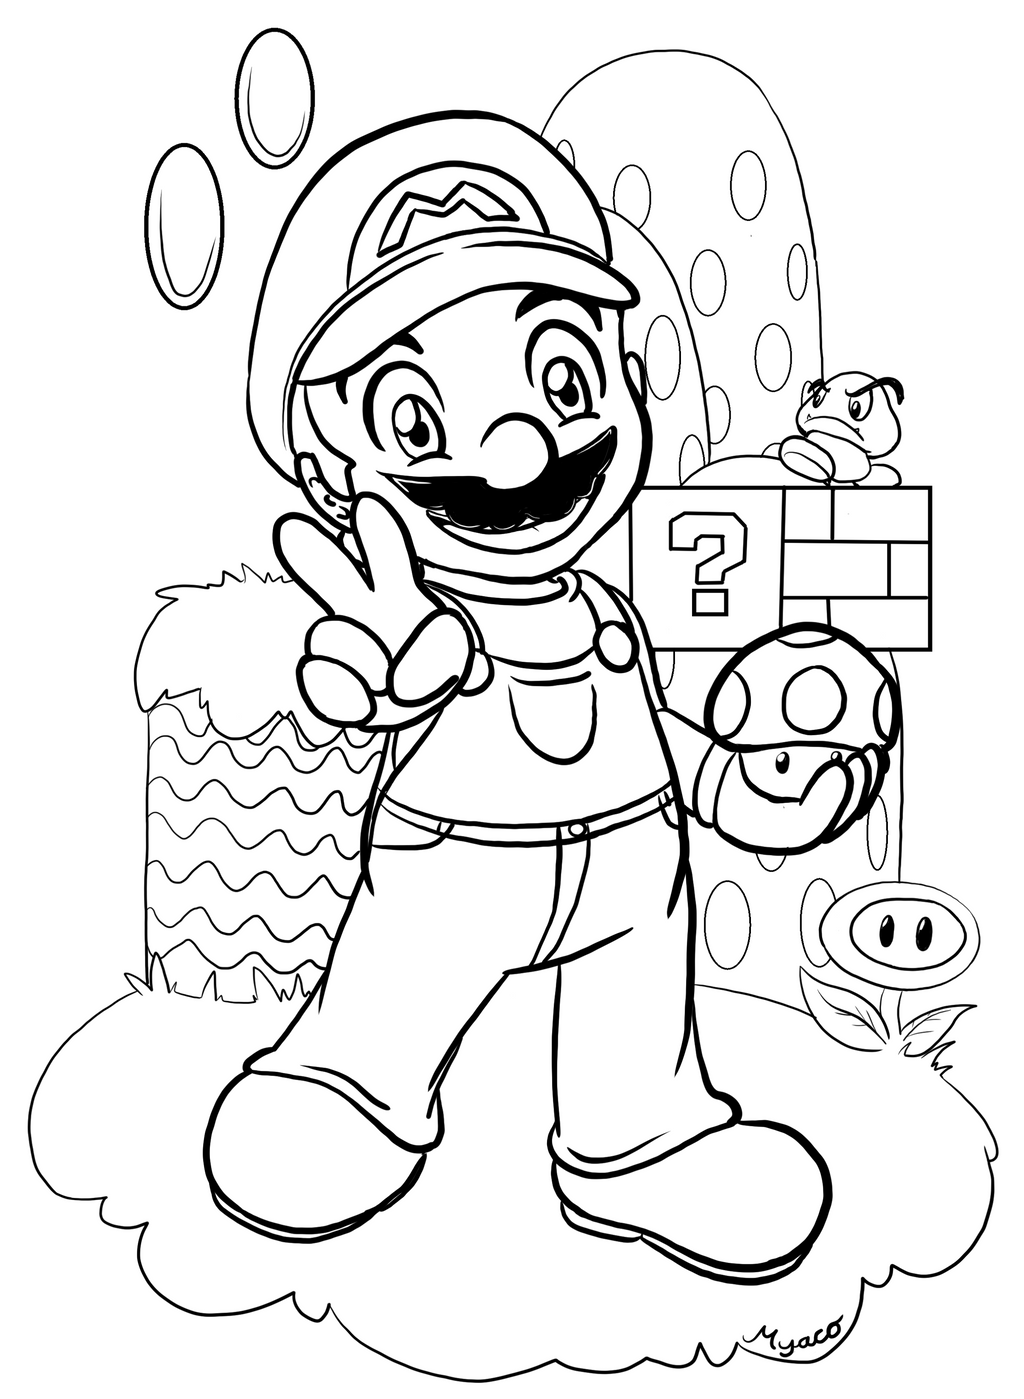 coloring pages mario games - photo #26